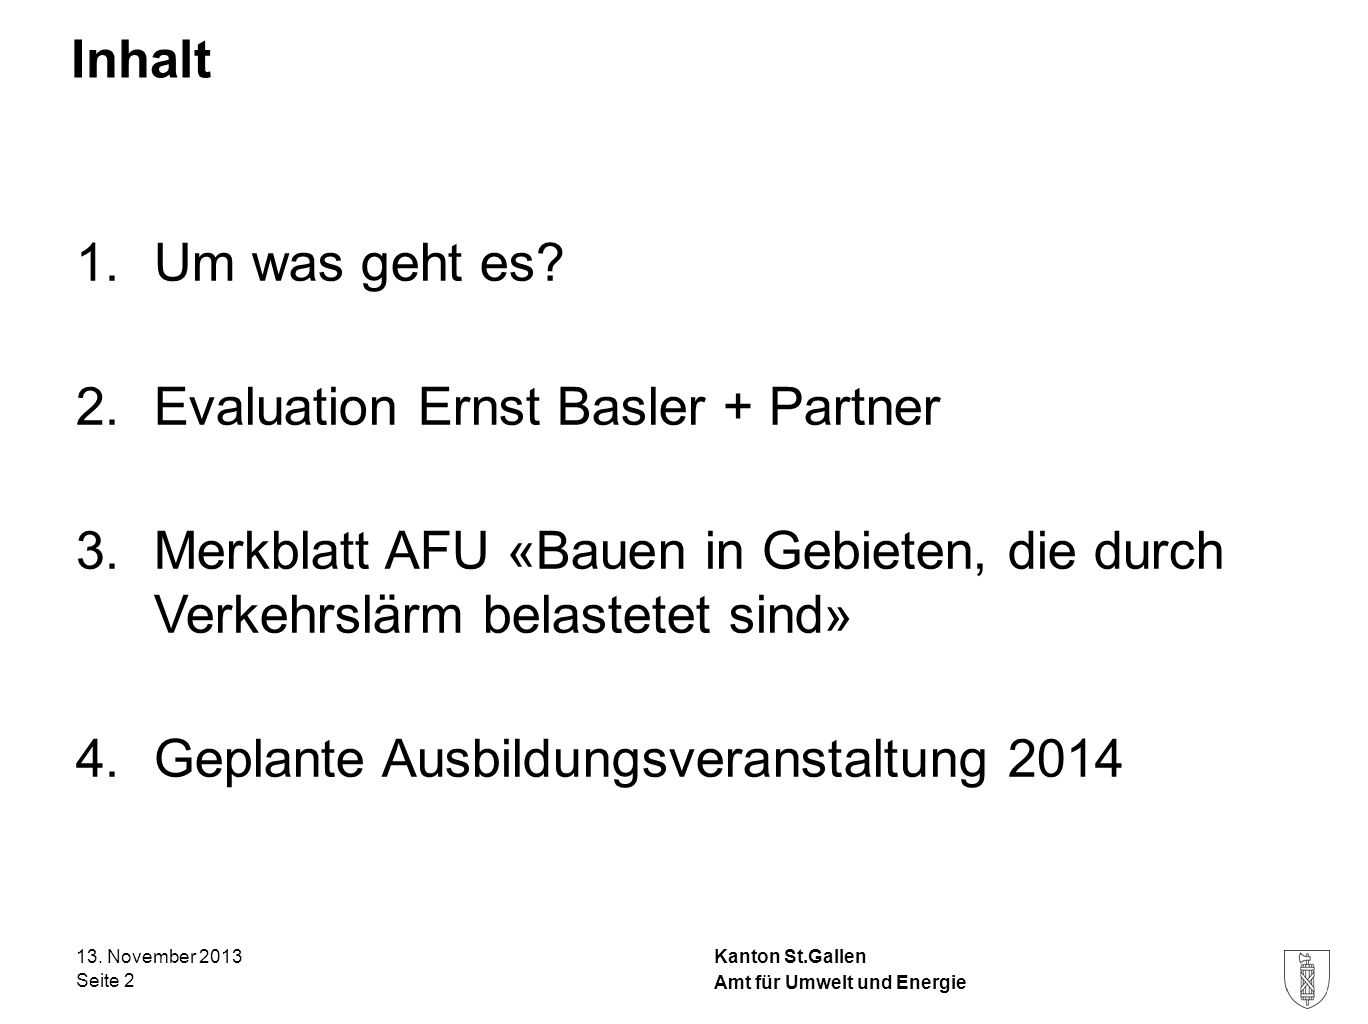 Evaluation Ernst Basler + Partner